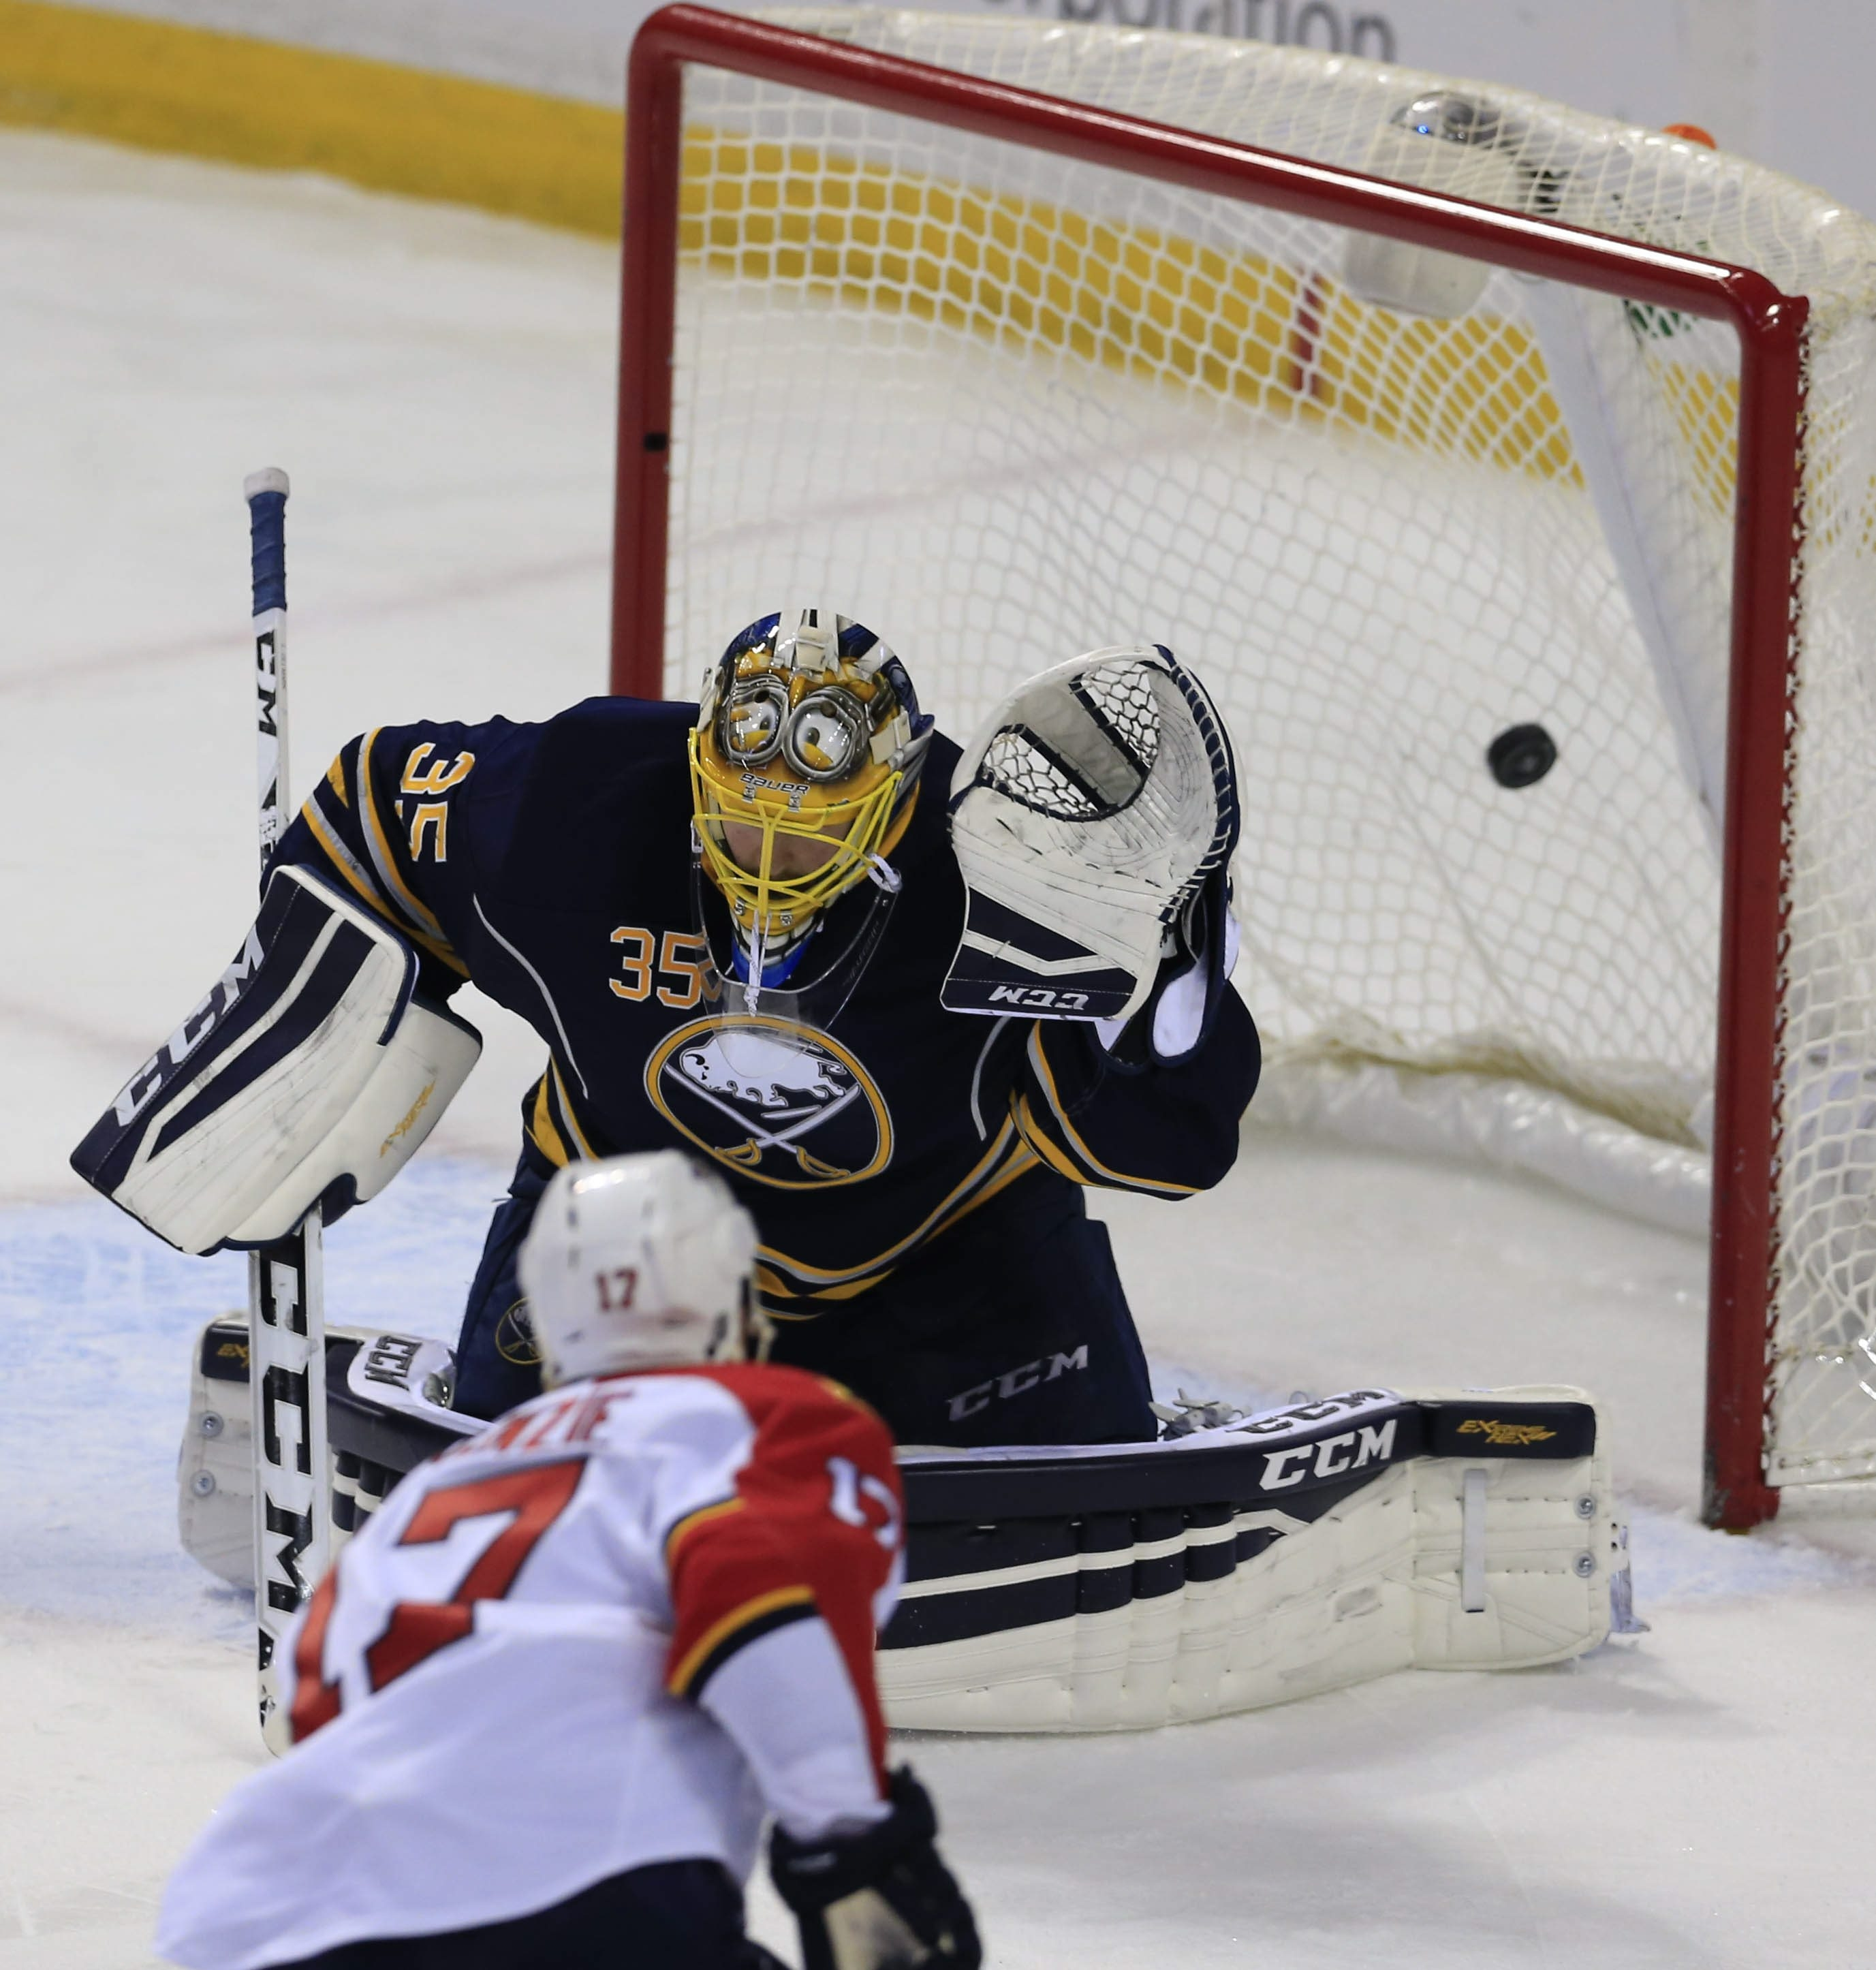 Florida's Derek MacKenzie scores against Buffalo goaltender Linus Ullmark in the second period Tuesday, snapping a 1-1 tie.